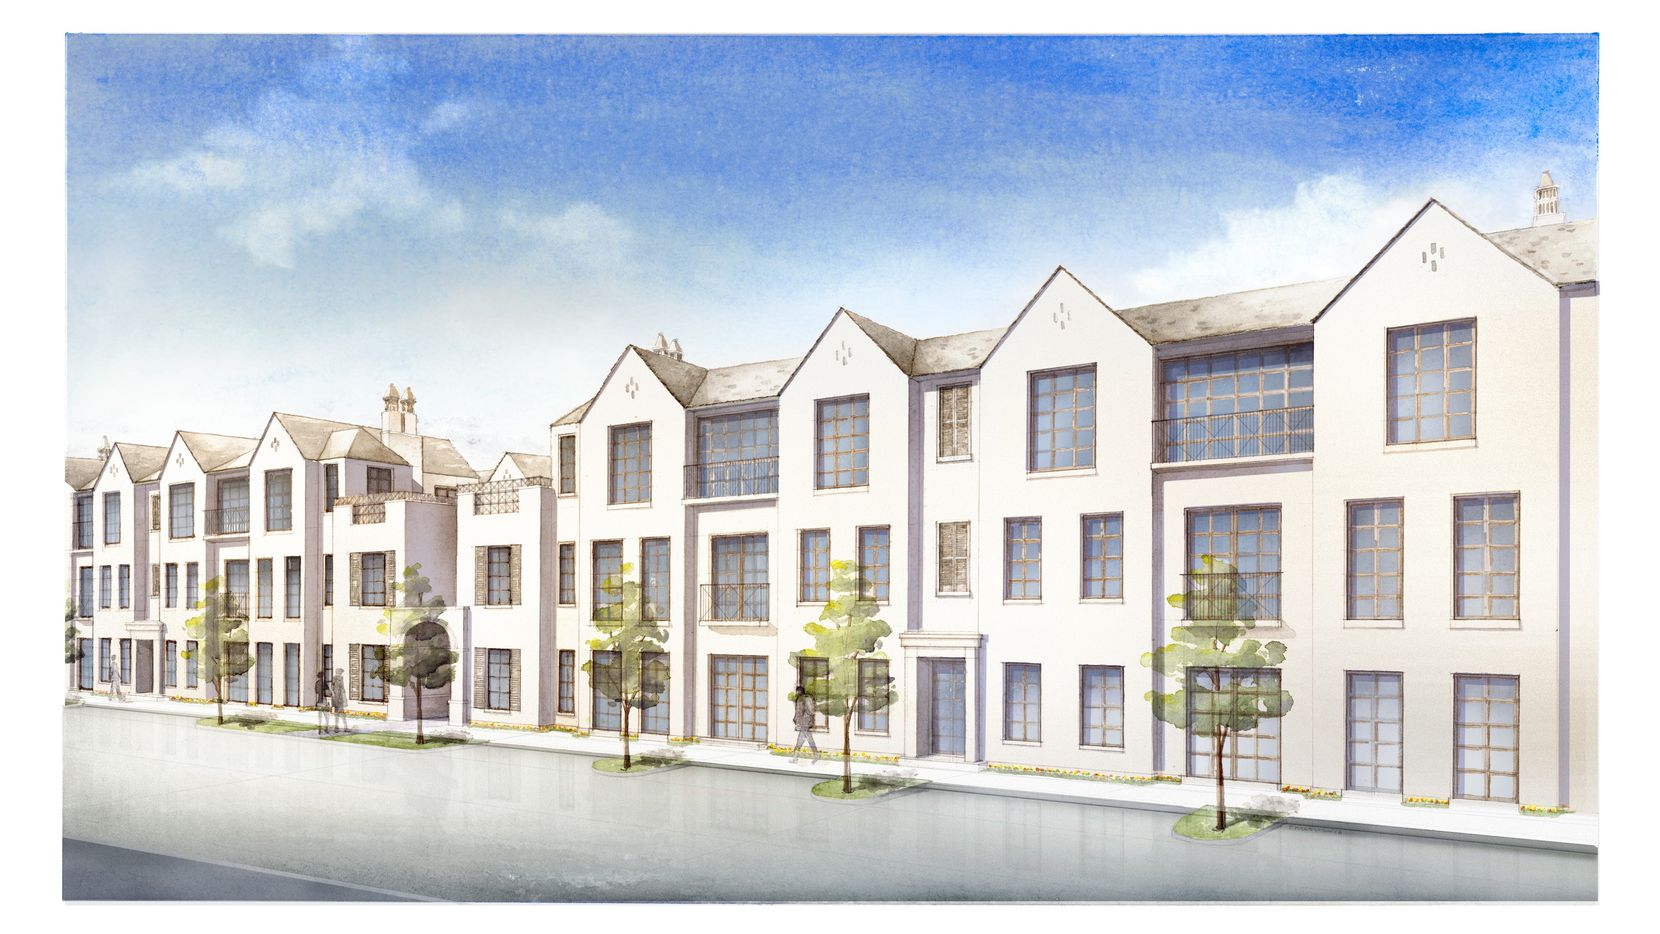 The first phase of the Corvalla condos will have 69 units